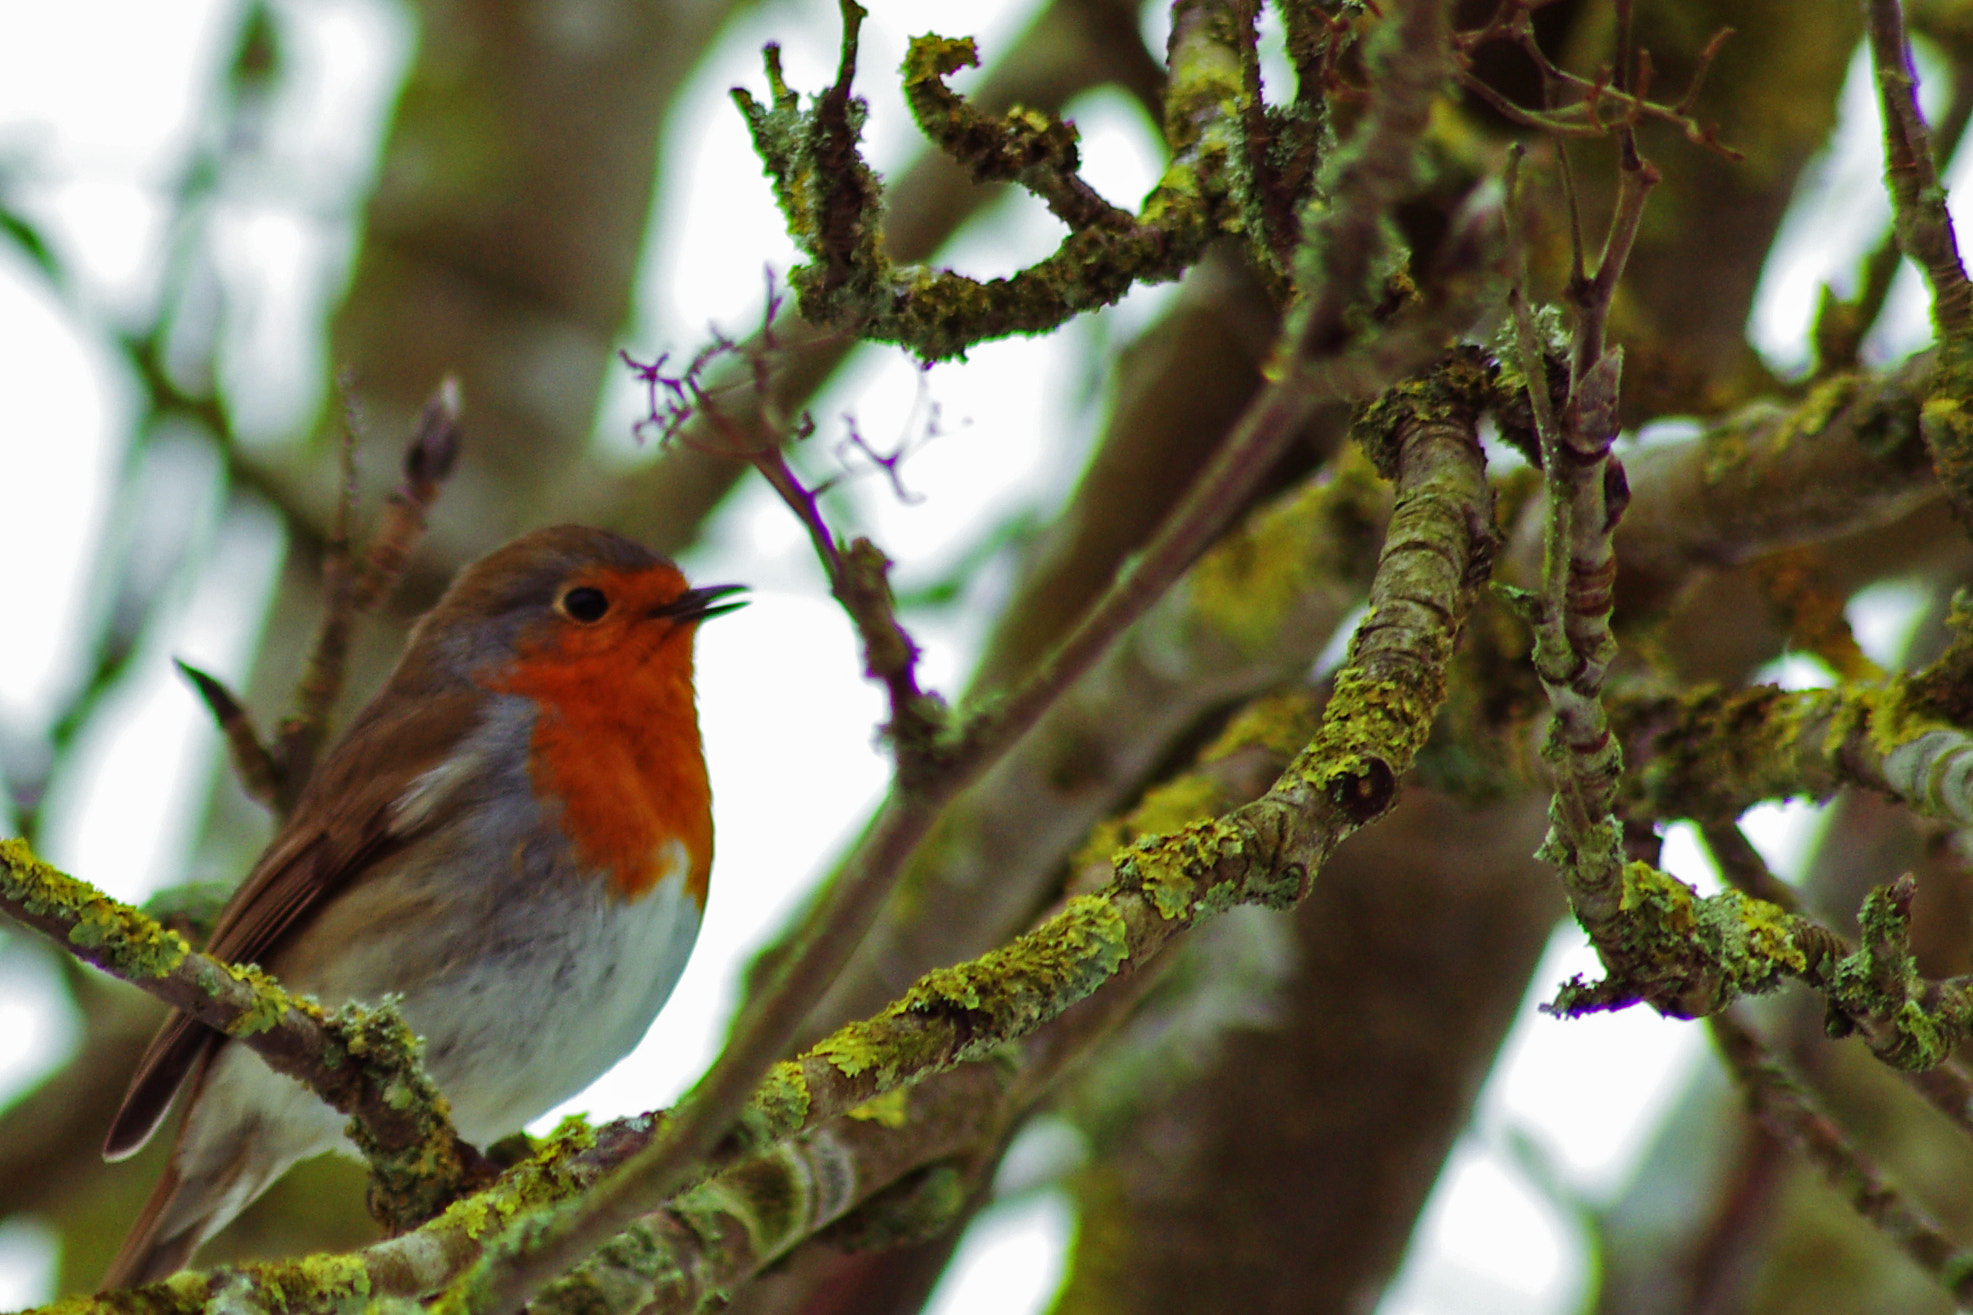 Photograph Robin In The Garden by Lee Ashman on 500px